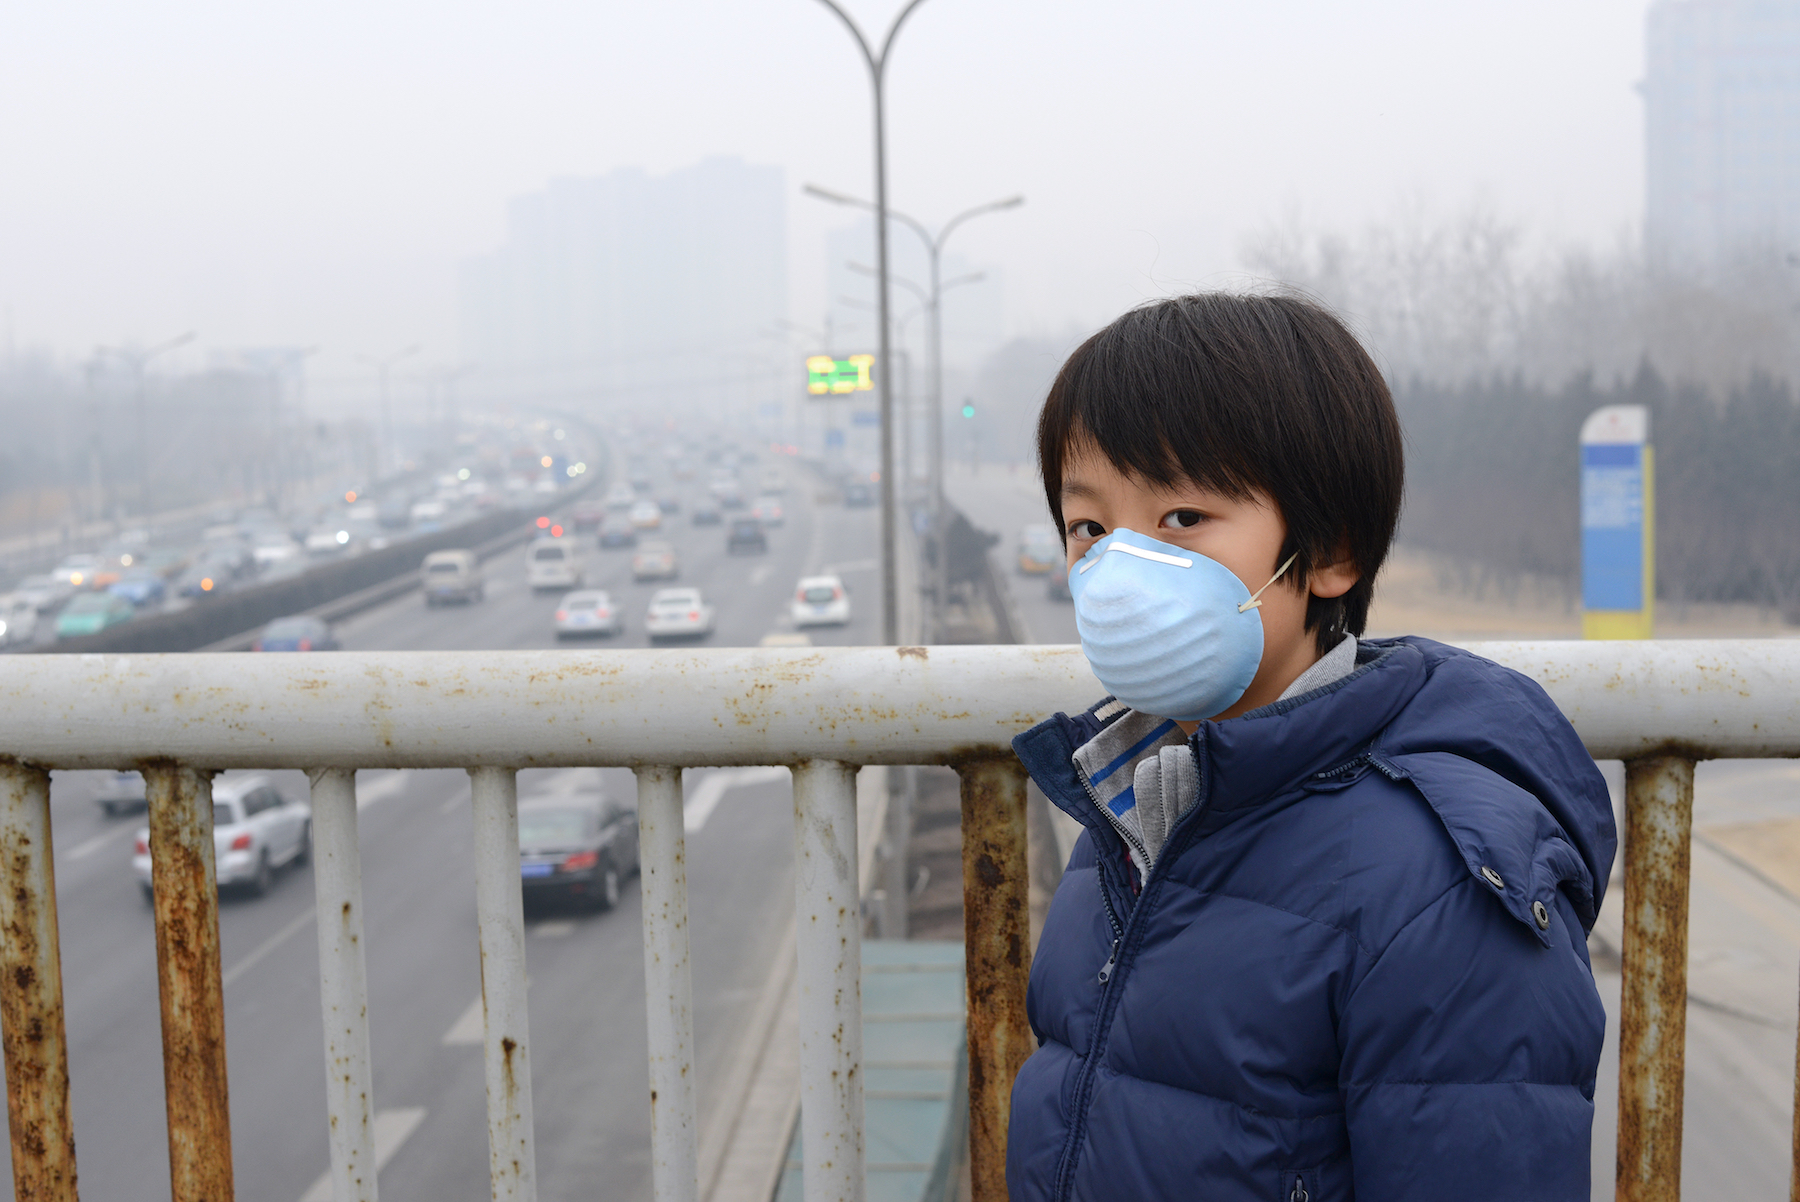 Long-term exposure to traffic and ozone significantly increases the risk of asthma attacks, and also increases the need for asthma medication and treatment.